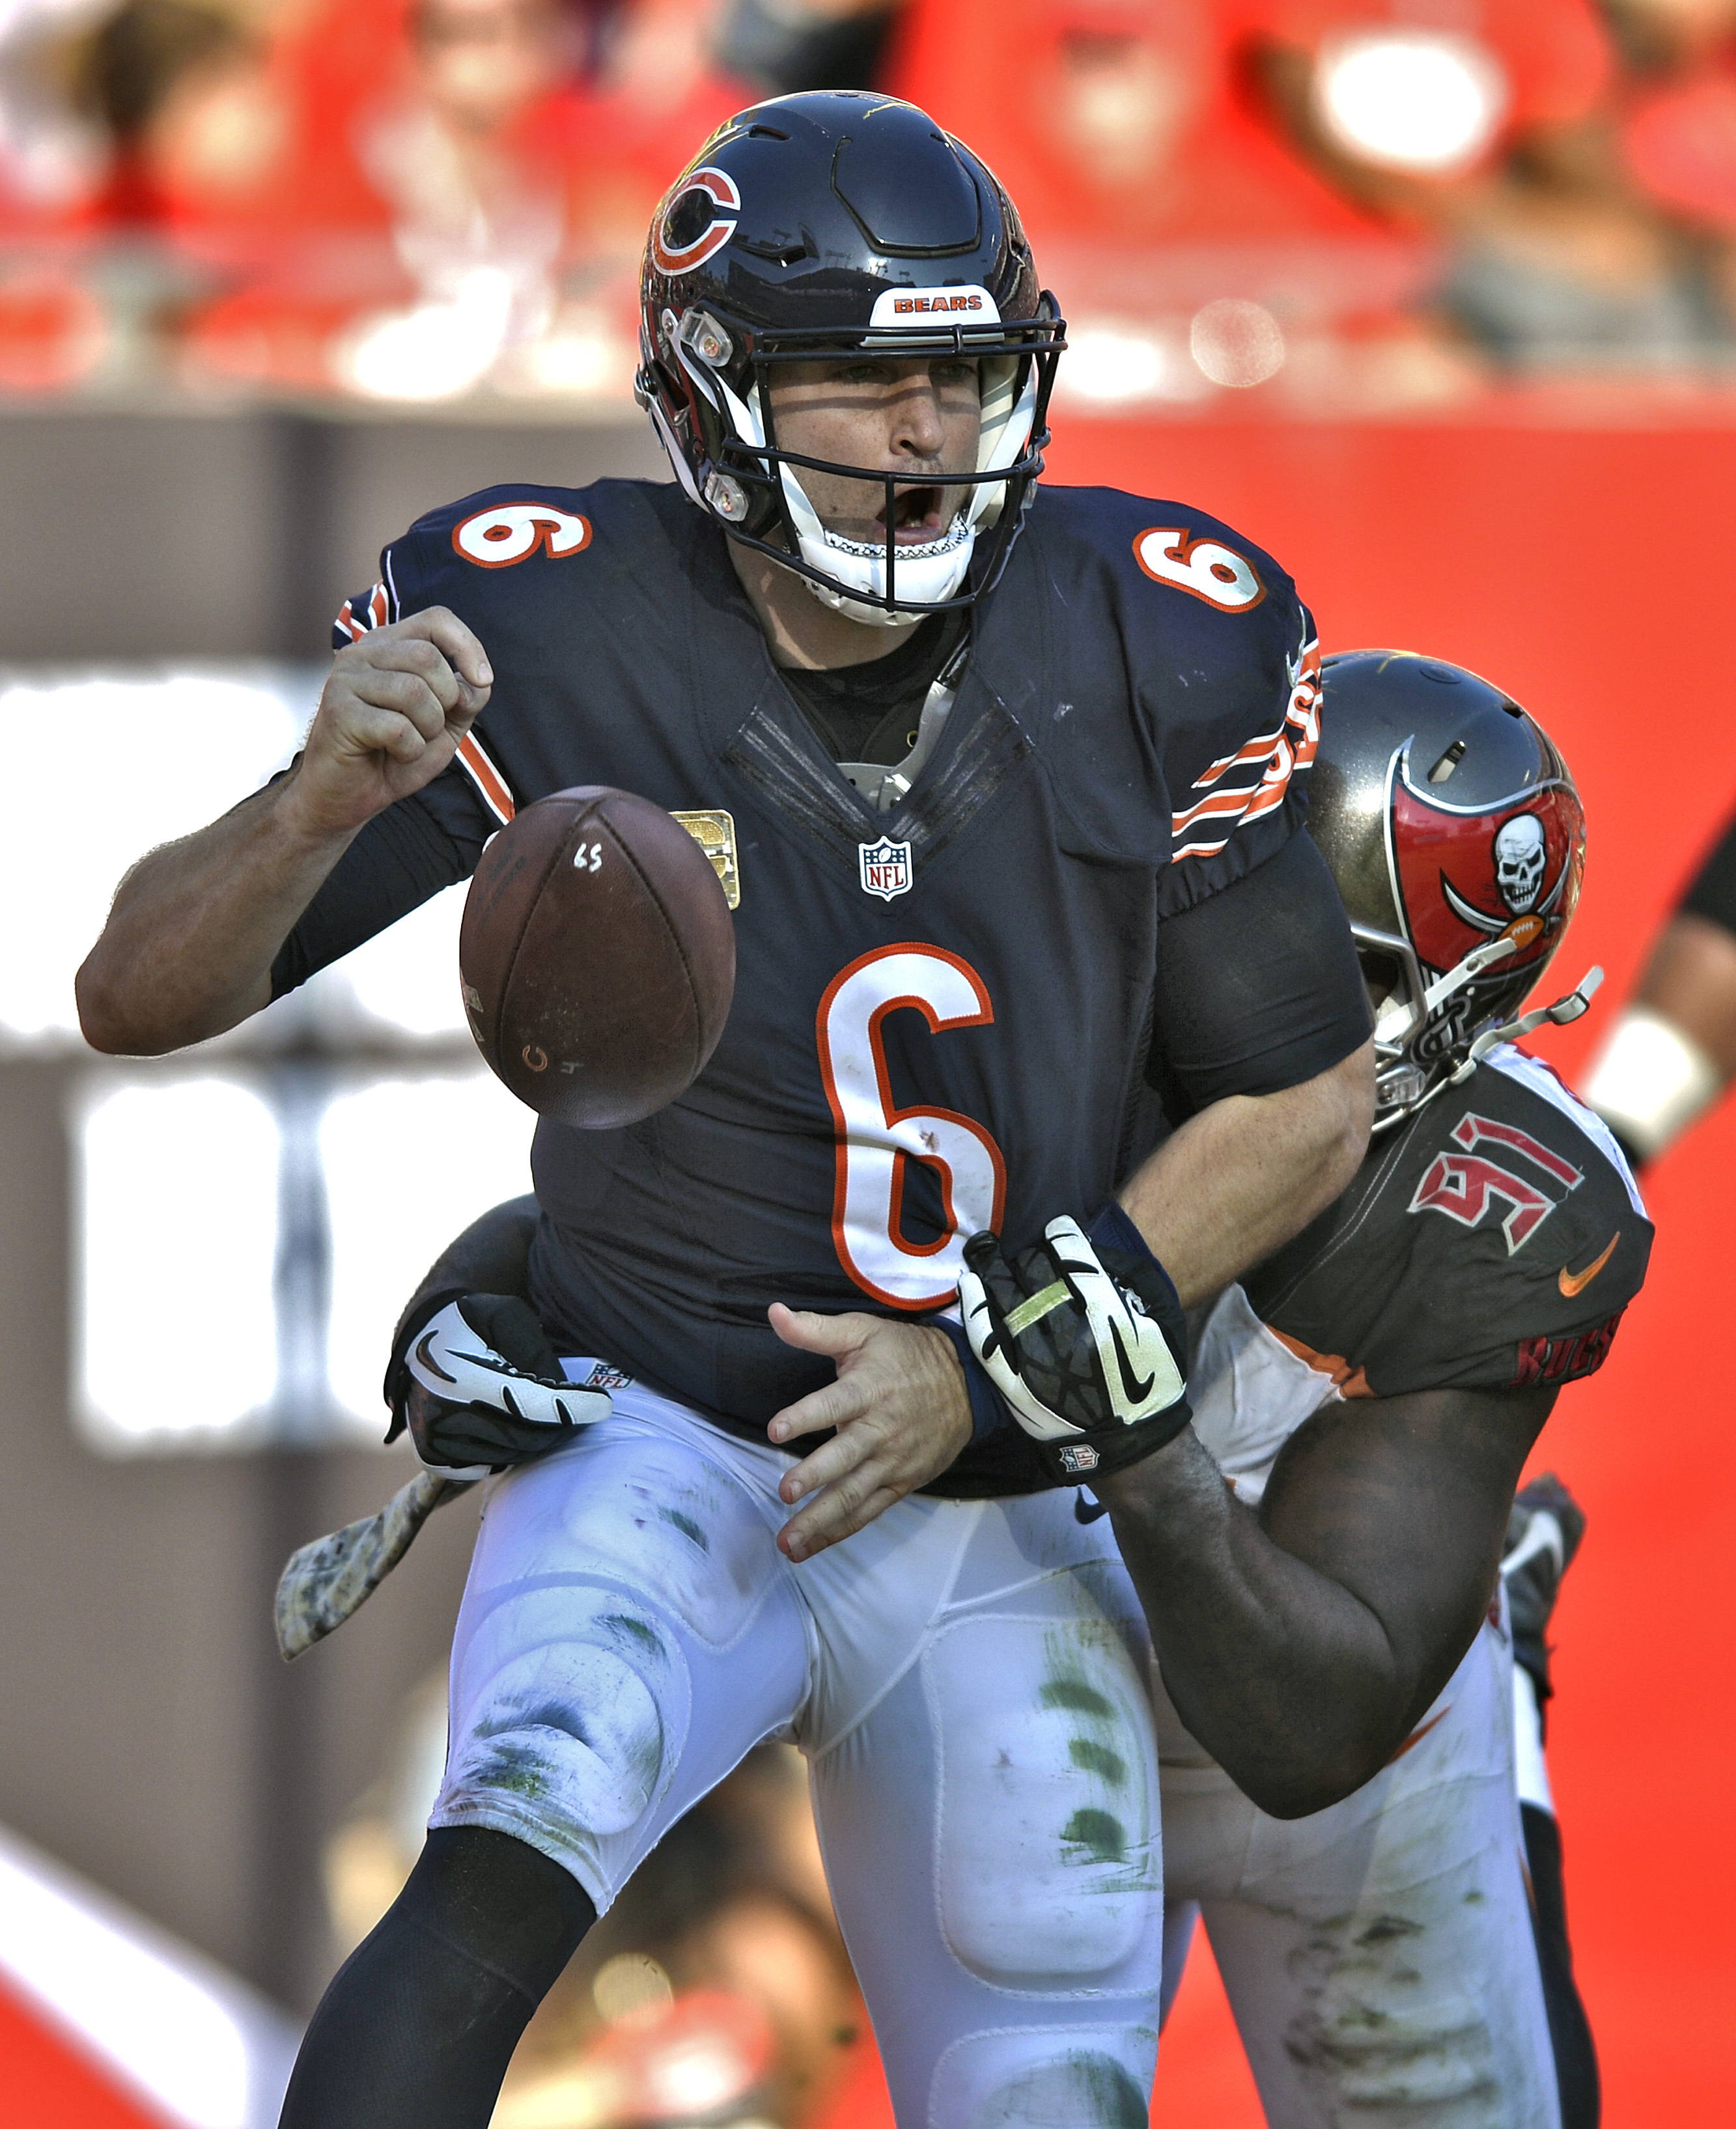 Chicago Bears quarterback Jay Cutler (6) fumbles as he is hit by Tampa Bay Buccaneers defensive end Robert Ayers (91) in the end zone during the third quarter of an NFL football game Sunday, Nov. 13, 2016, in Tampa, Fla. Cutler fumbled out of bounds resul